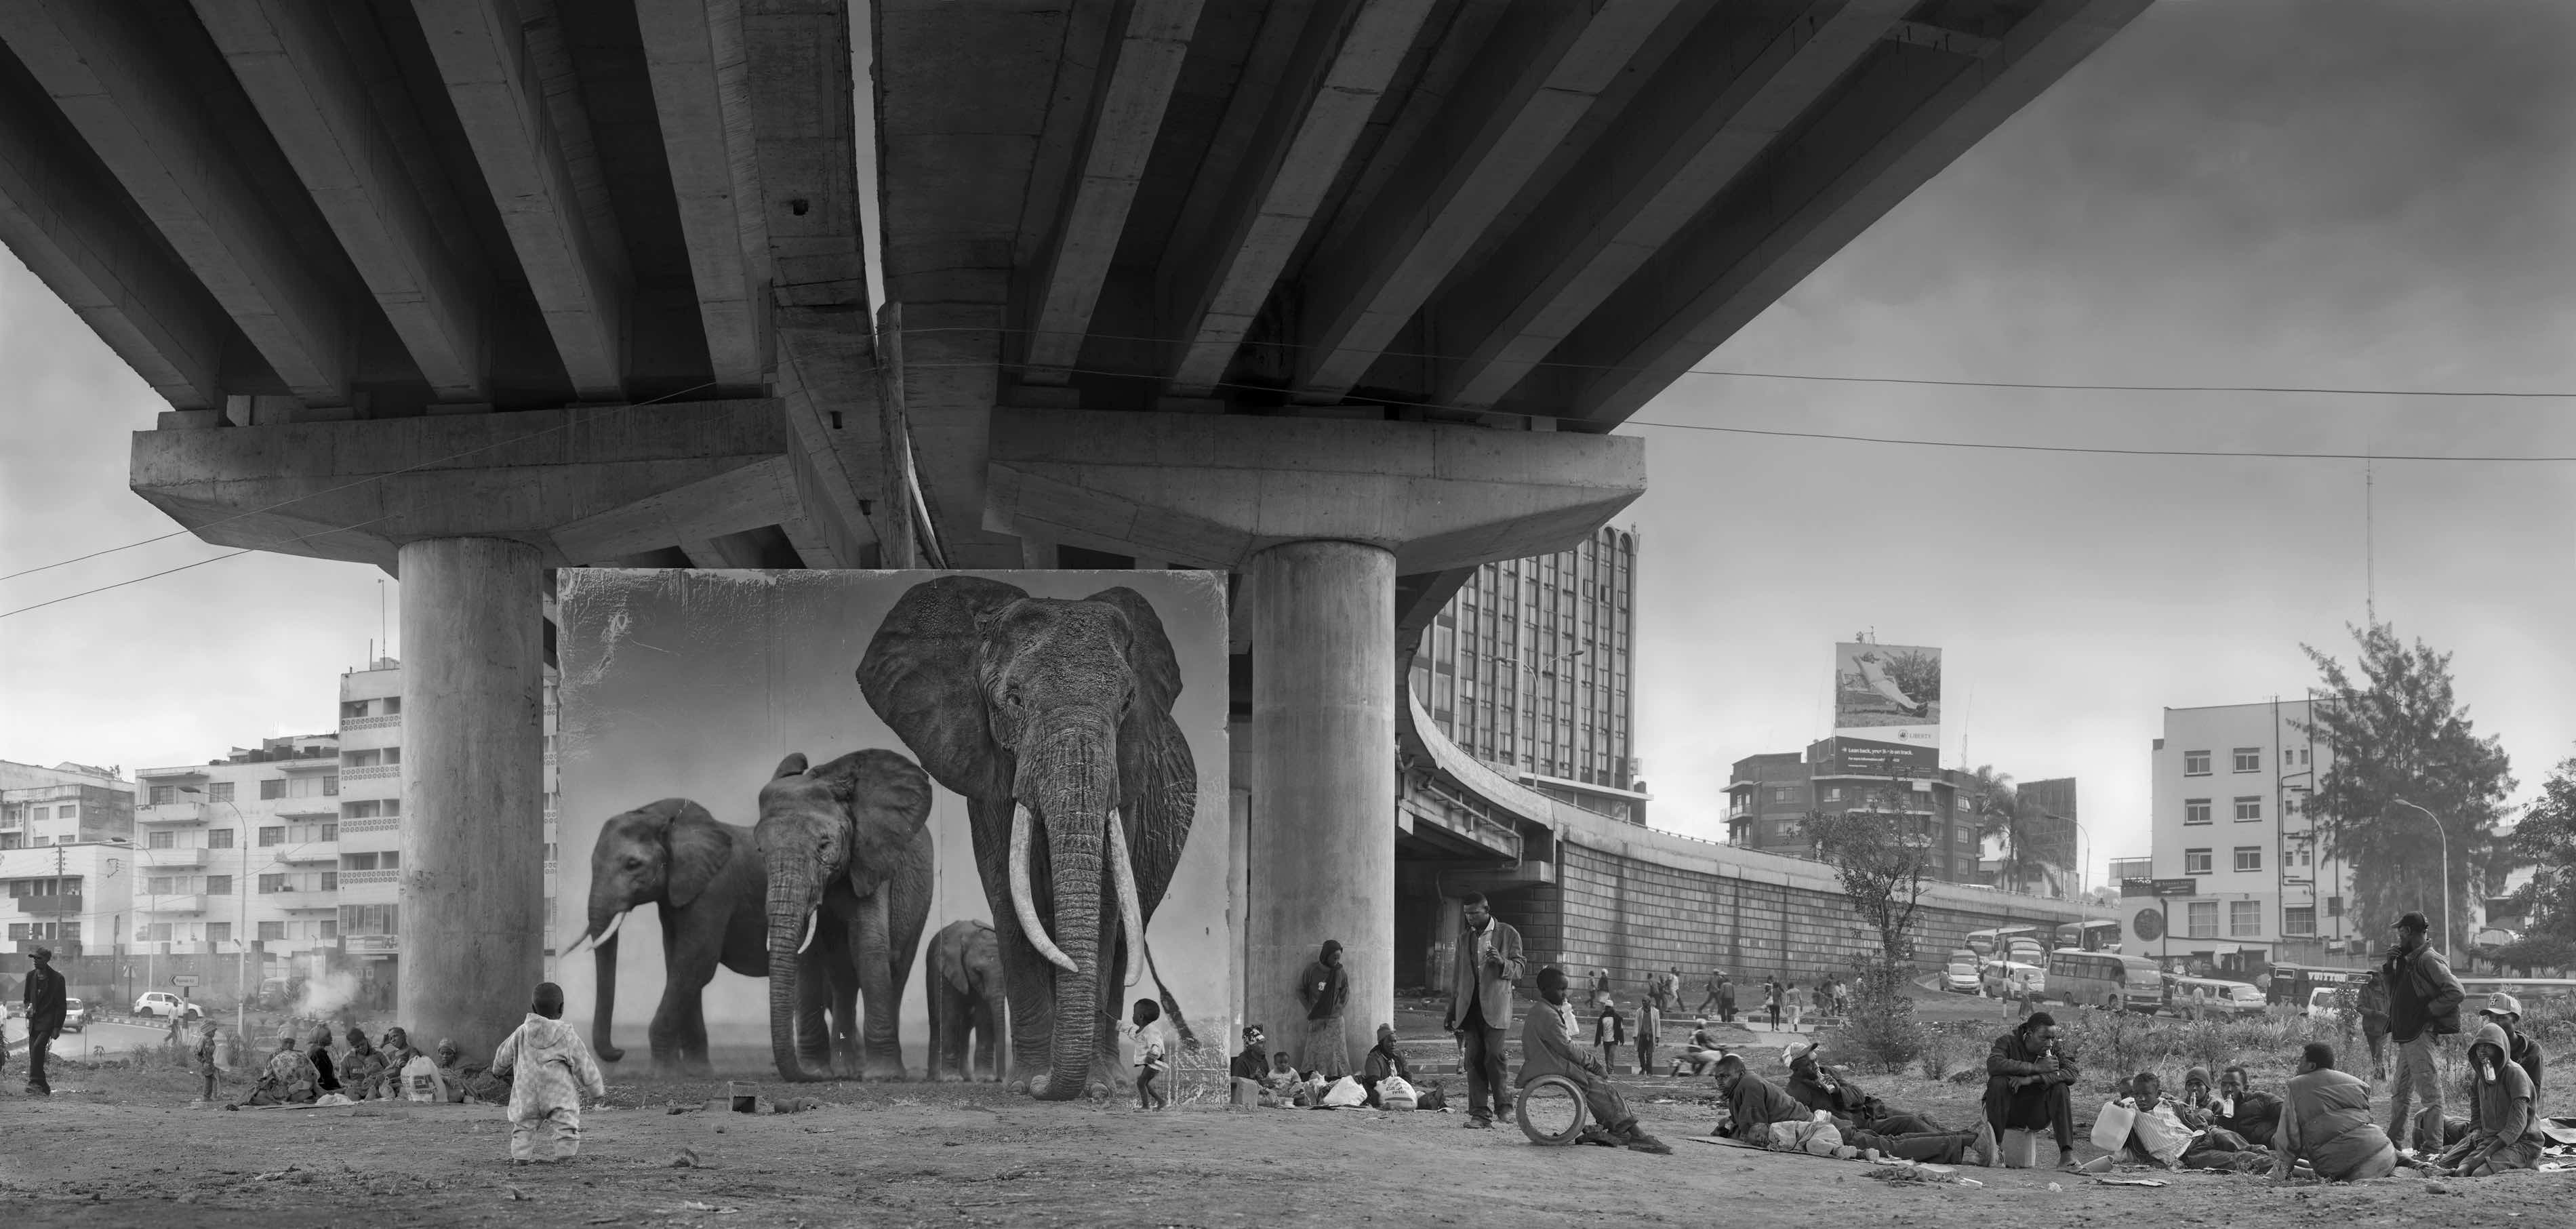 'Underpass With Elephants'